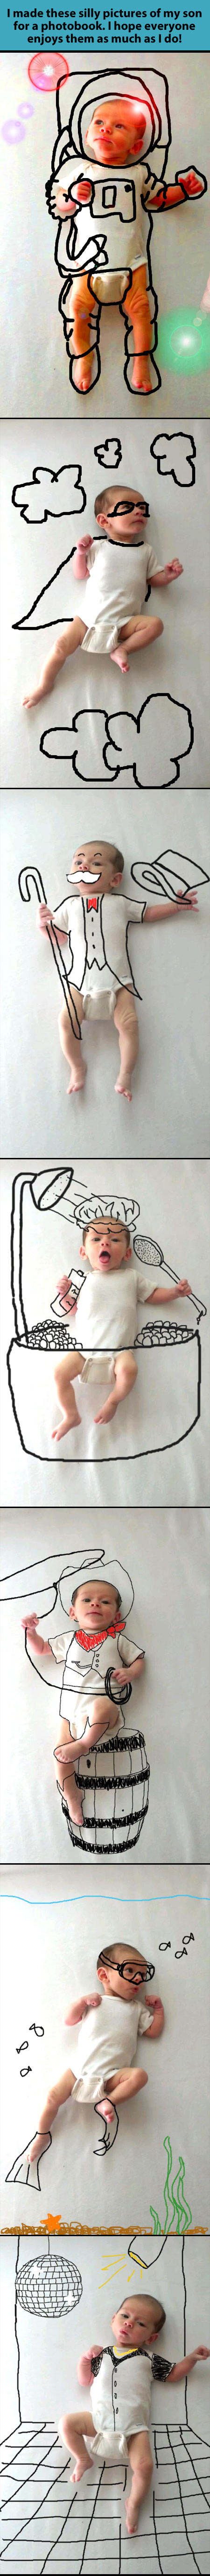 funny-baby-picture-drawing-astronaut